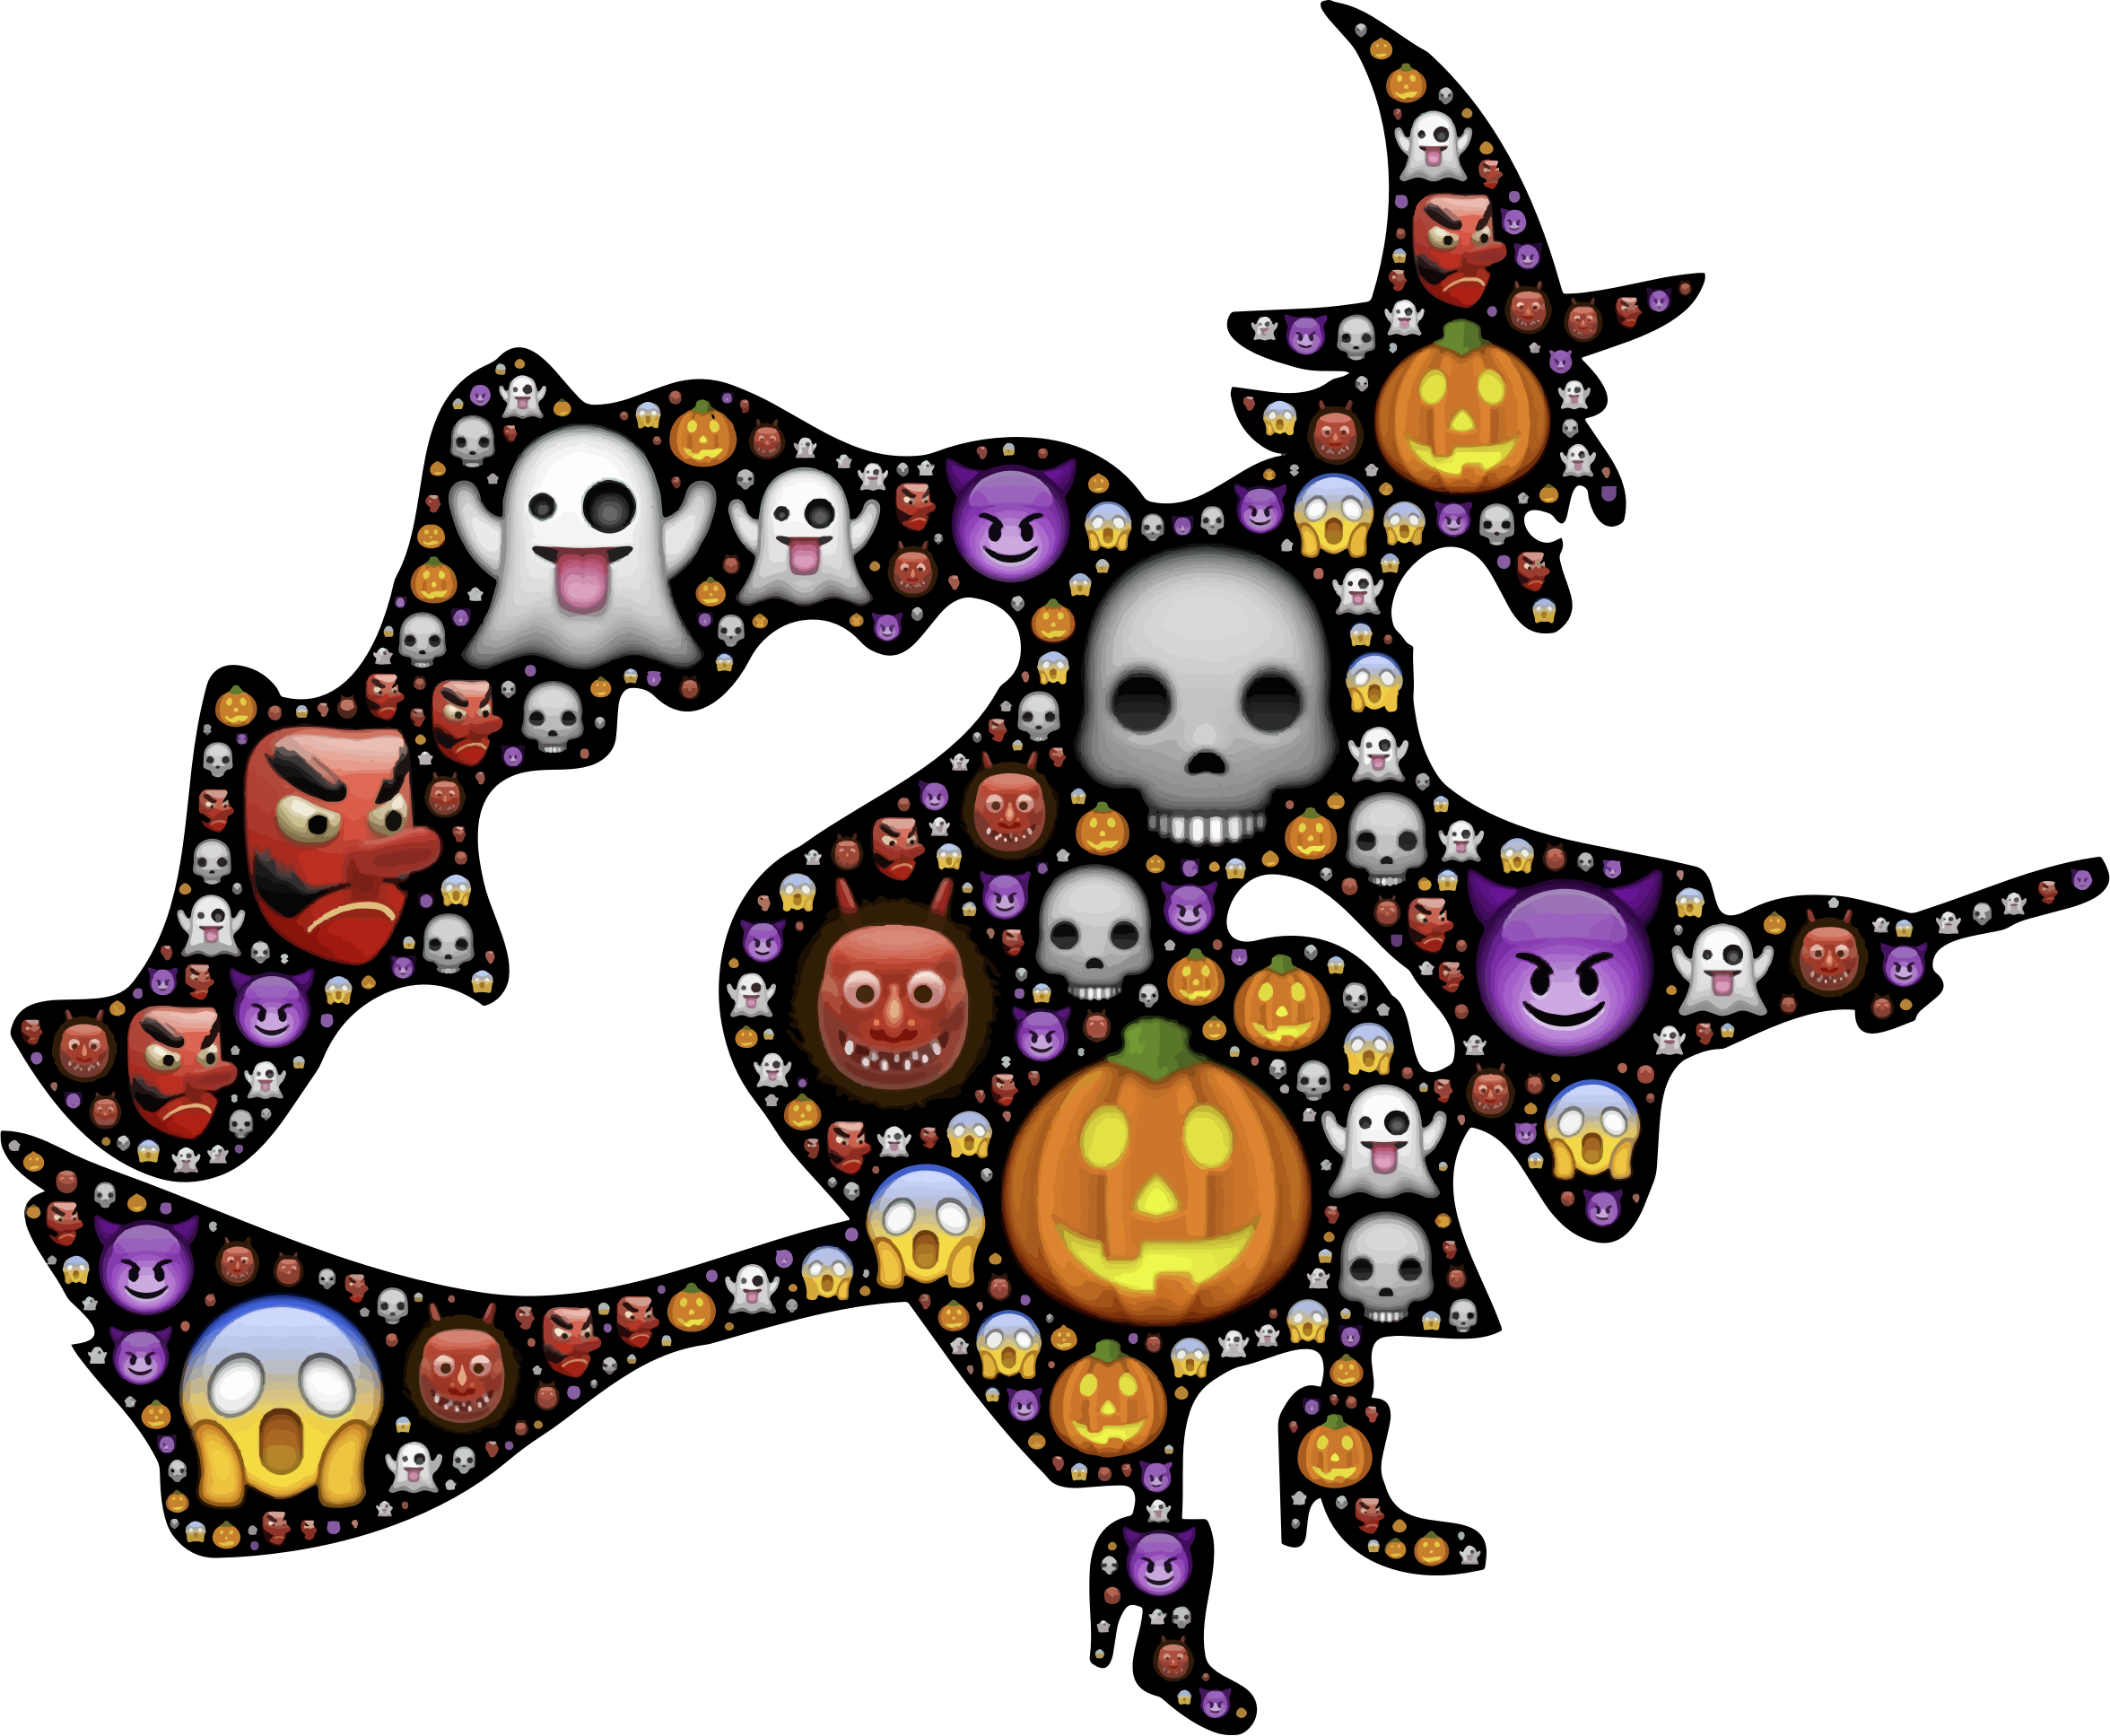 Colorful halloween clipart graphic royalty free library Clipart - Colorful Halloween Witch graphic royalty free library